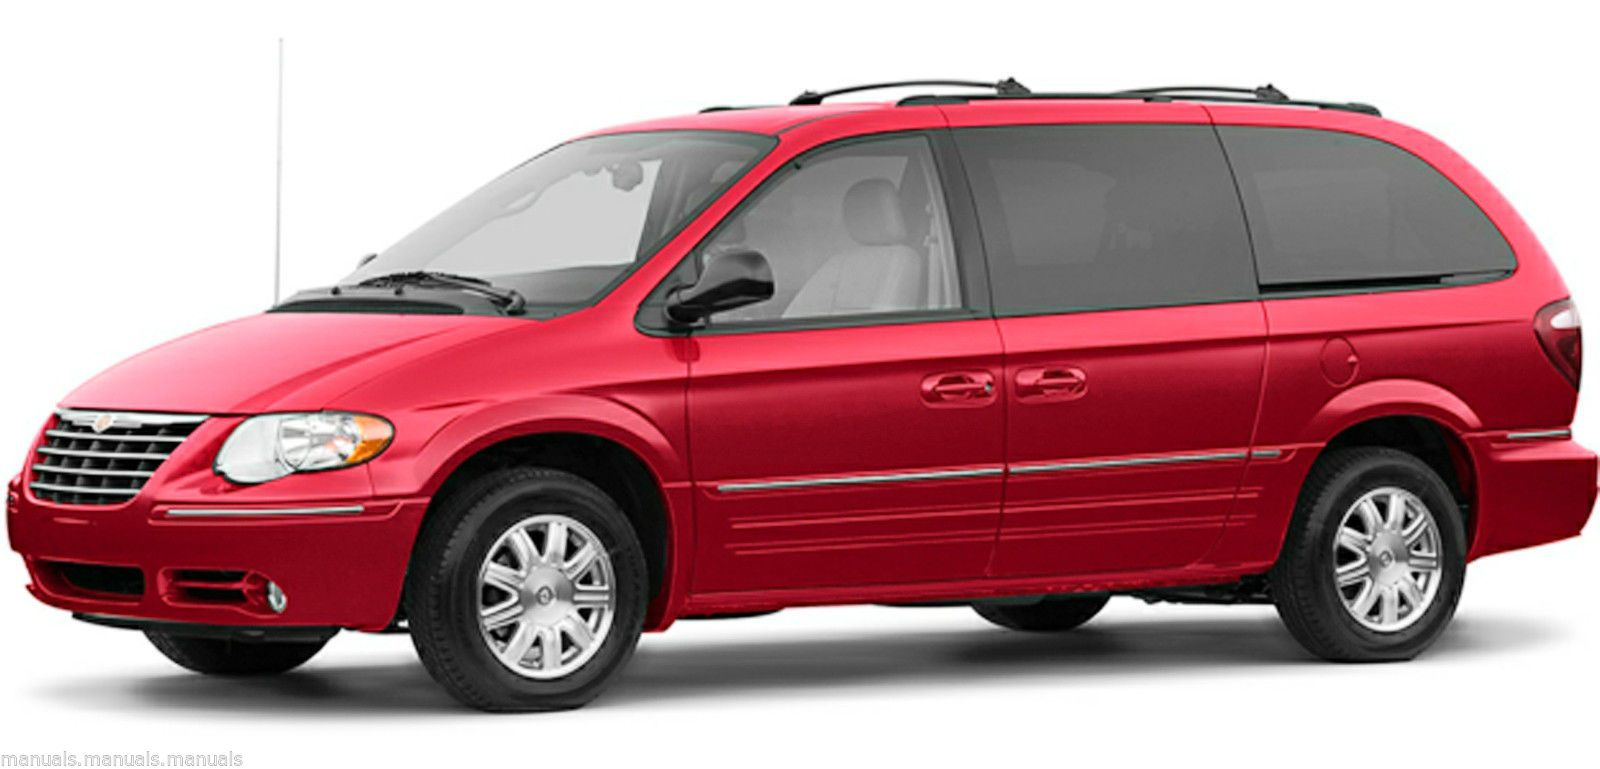 Chrysler Dodge Caravan Town Country 2005 Rg Service Manual Ebay